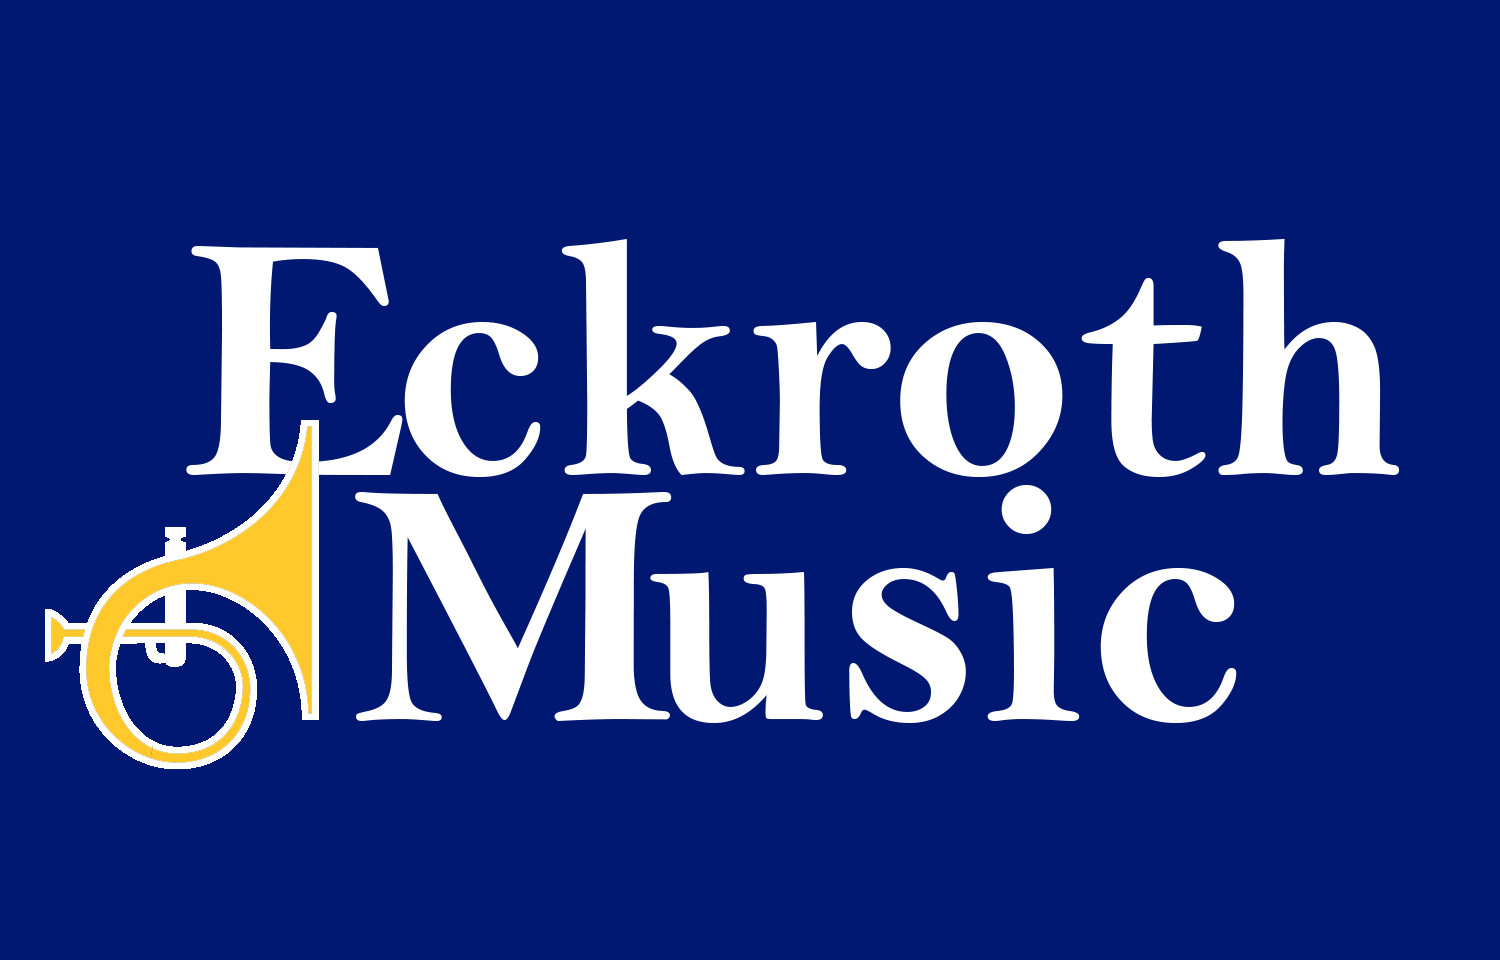 Eckroth Music